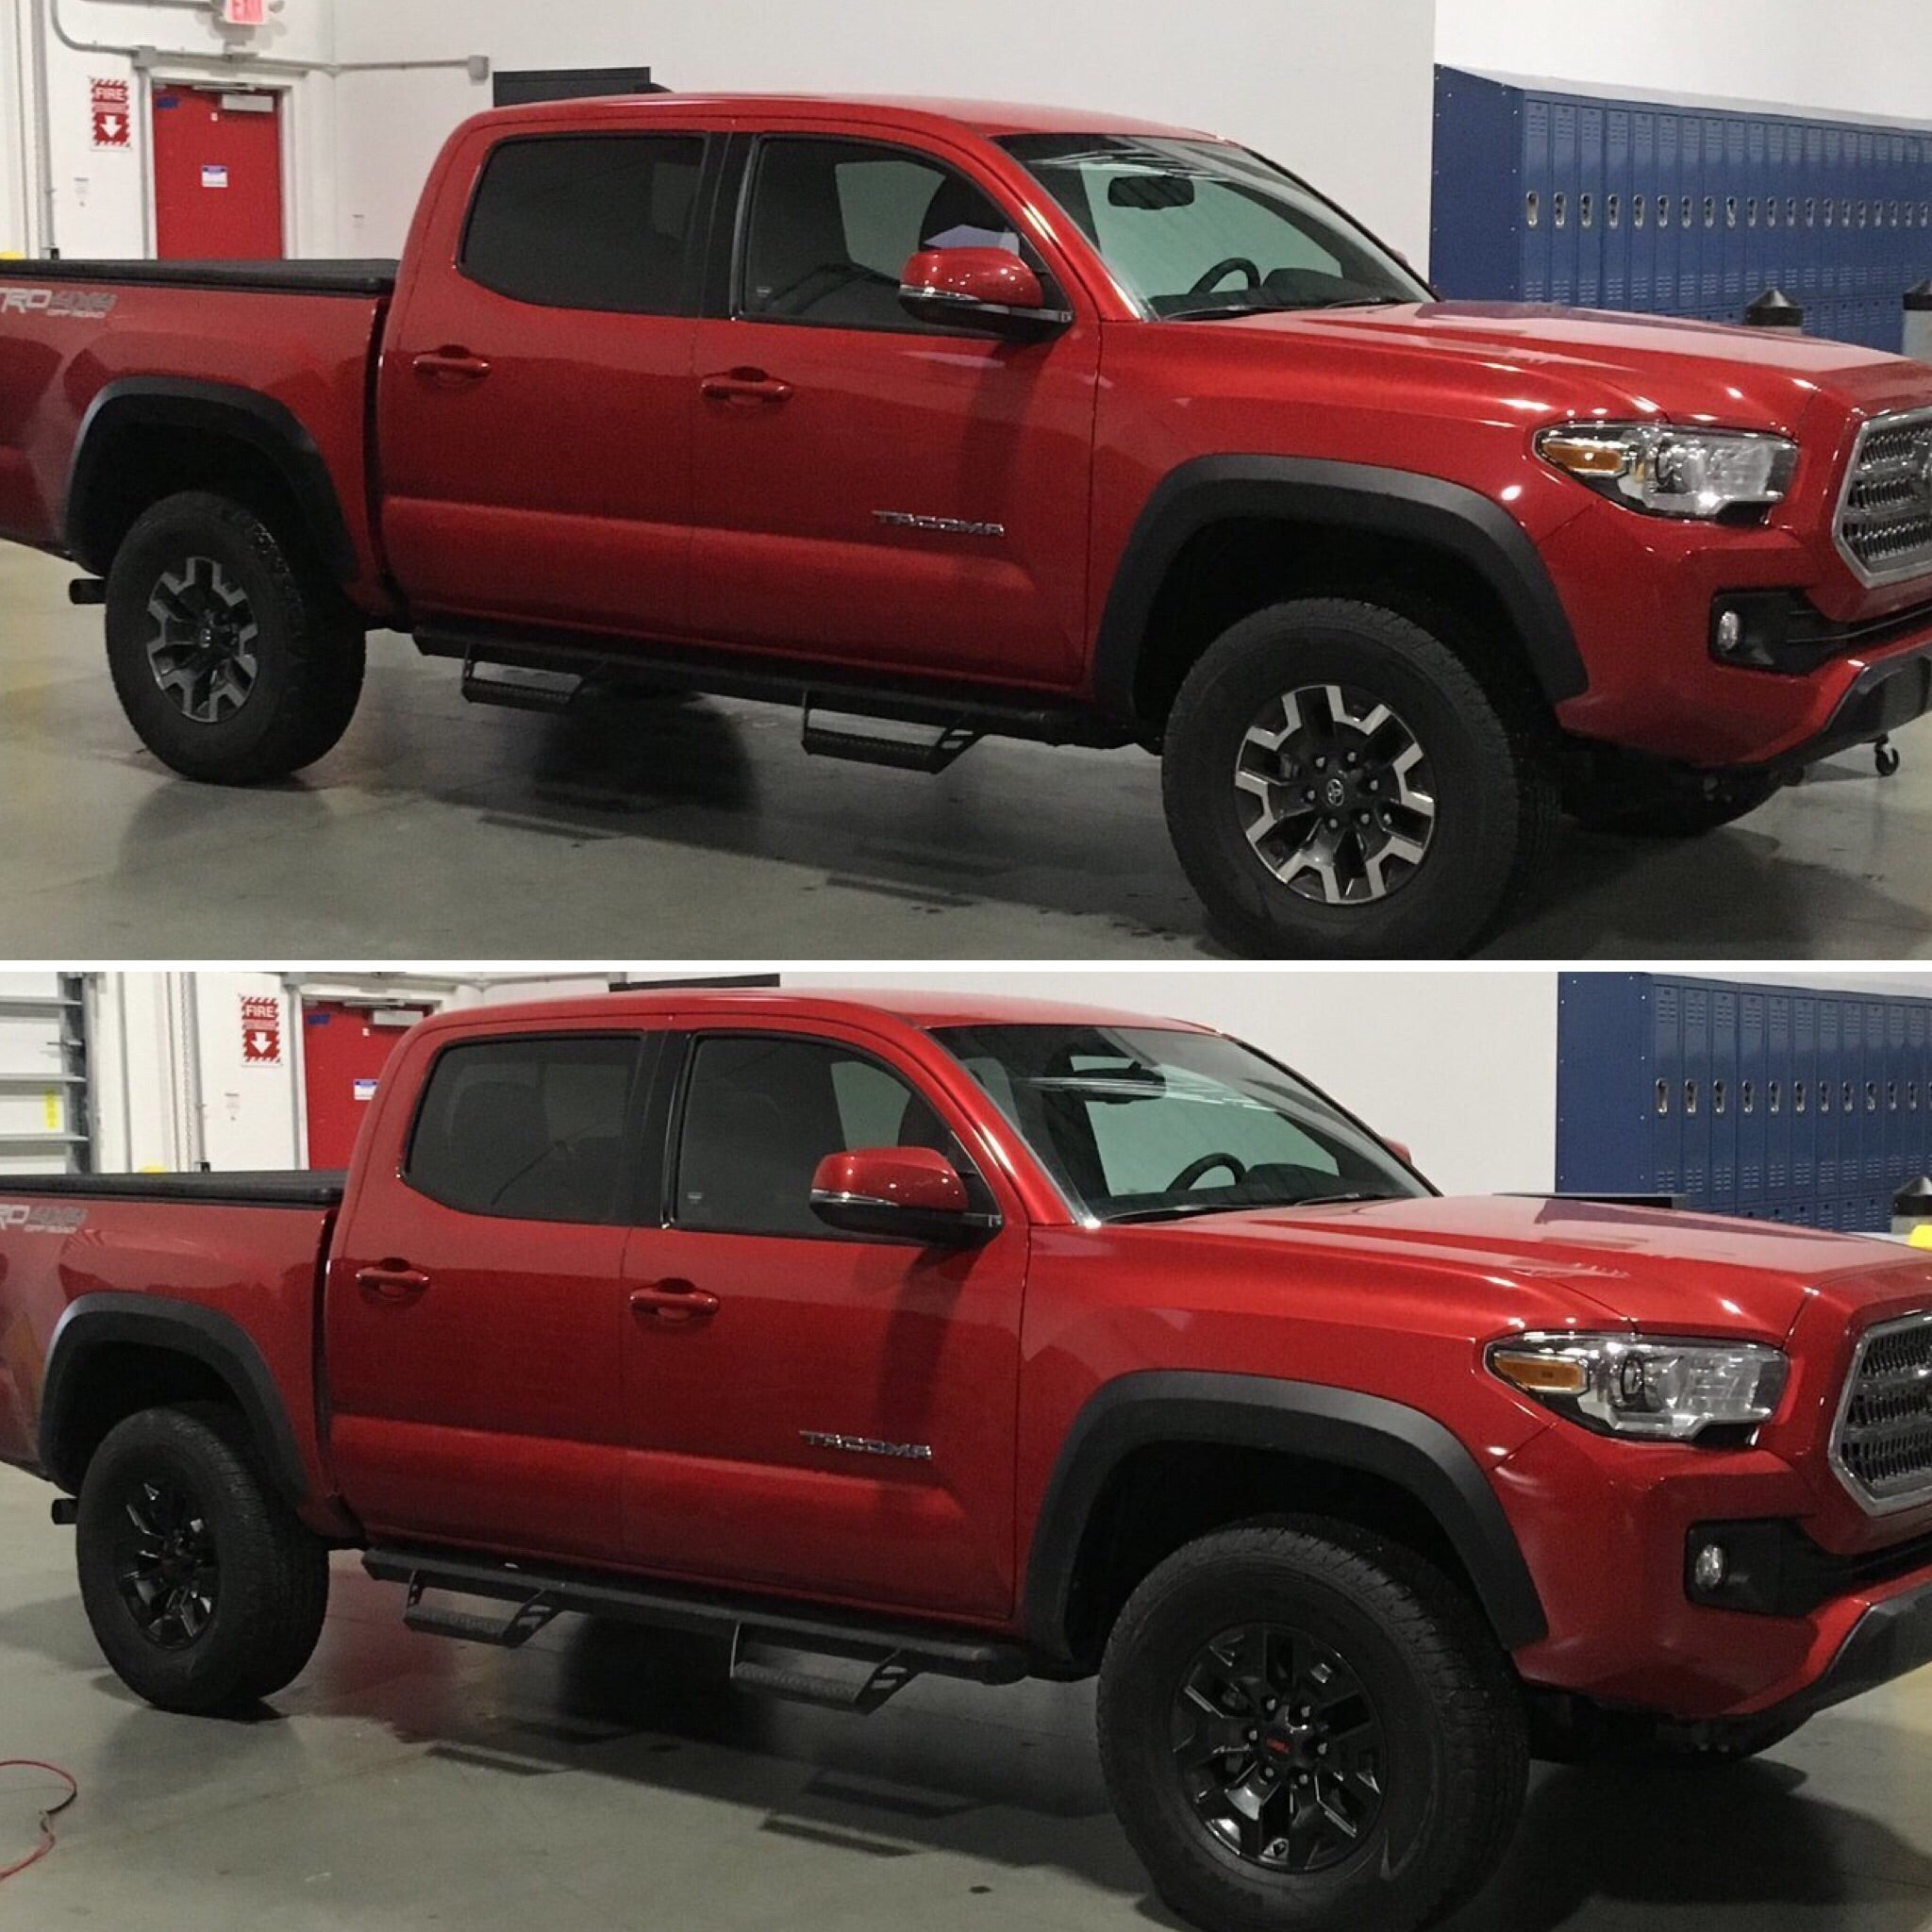 2019 Toyota Tacoma Off Road Wheel Decals (Blackout